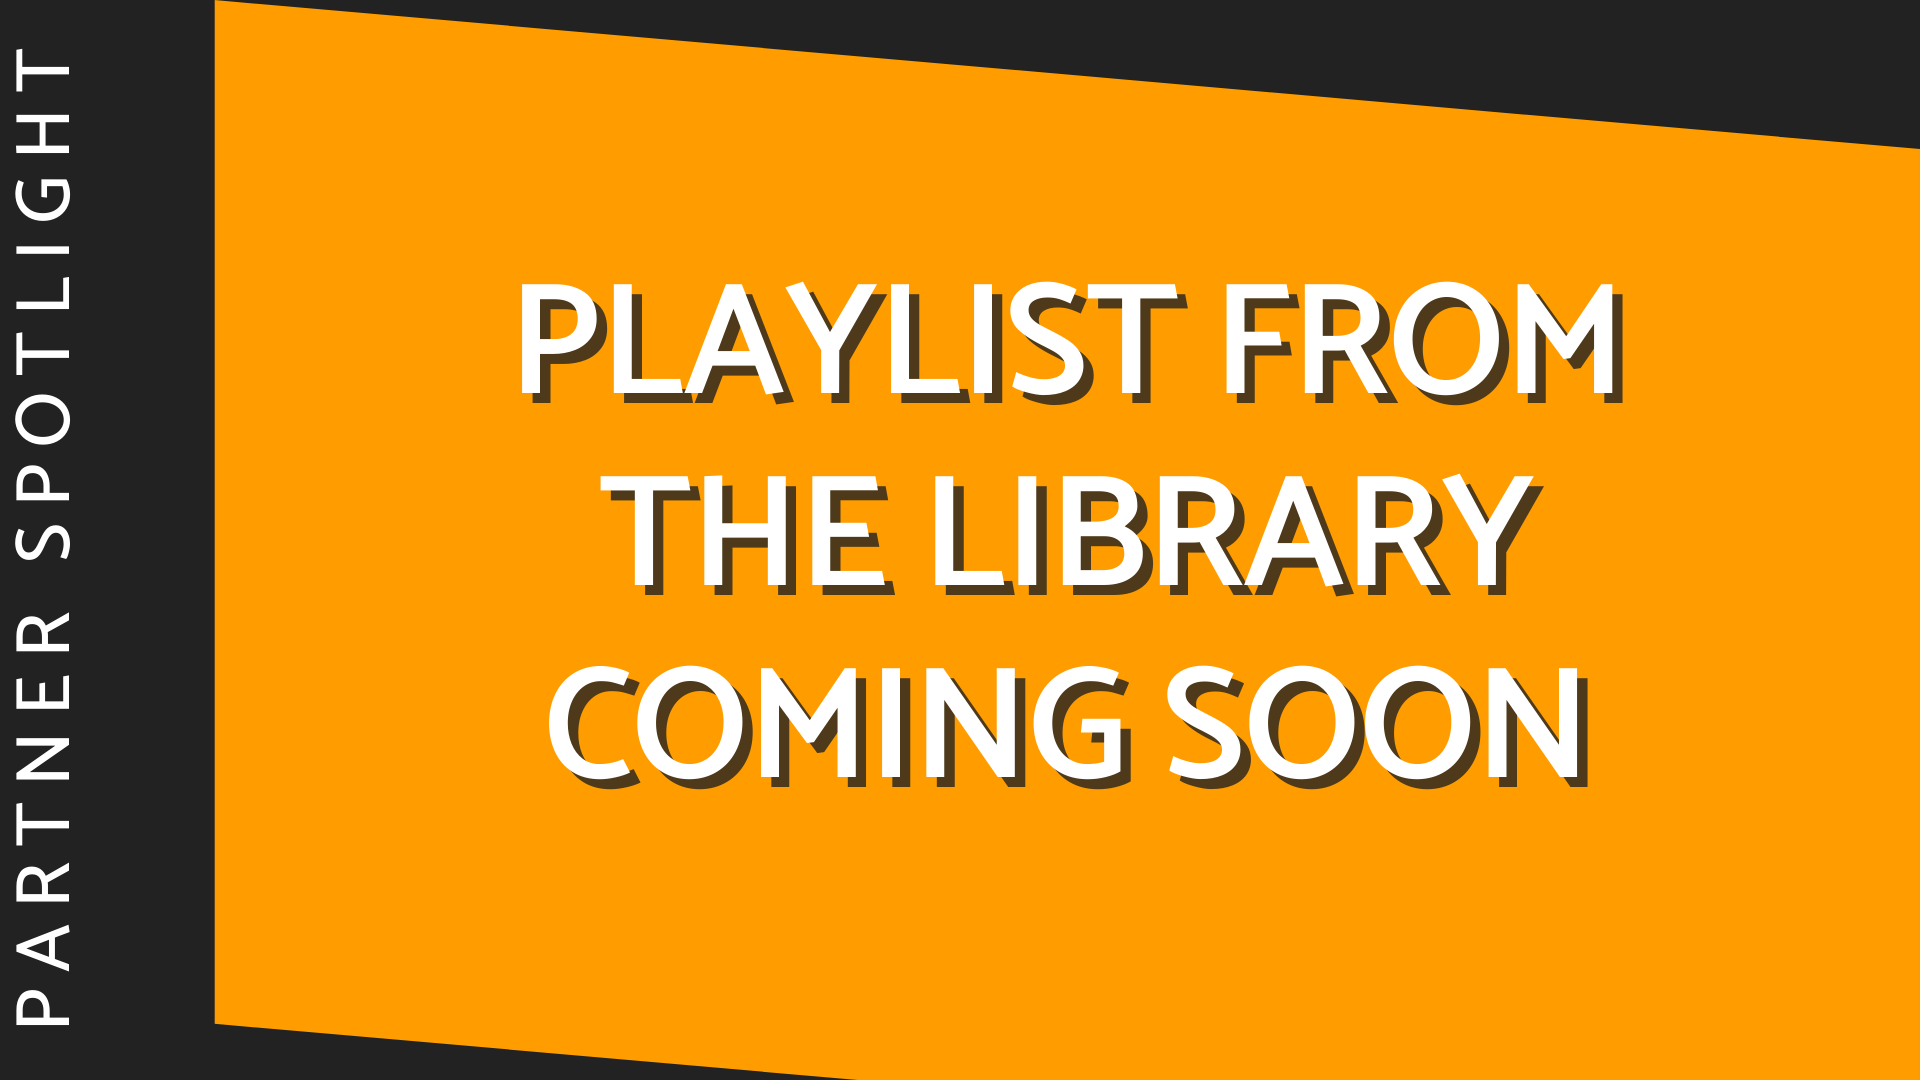 Playlist from the library coming soon